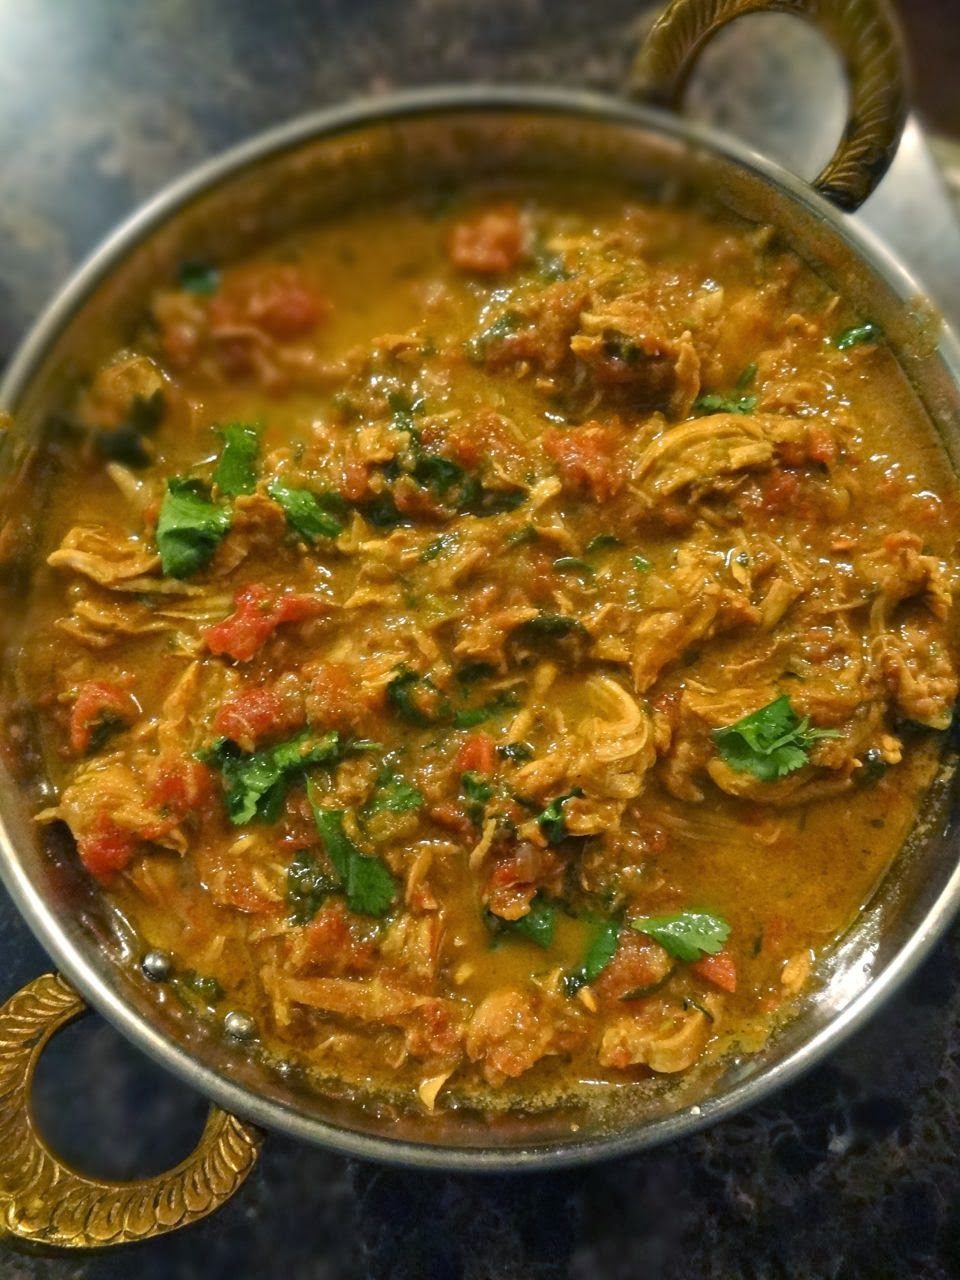 Scrumpdillyicious murgh kari my favourite chicken curry murgh kari my favourite chicken curry forumfinder Image collections